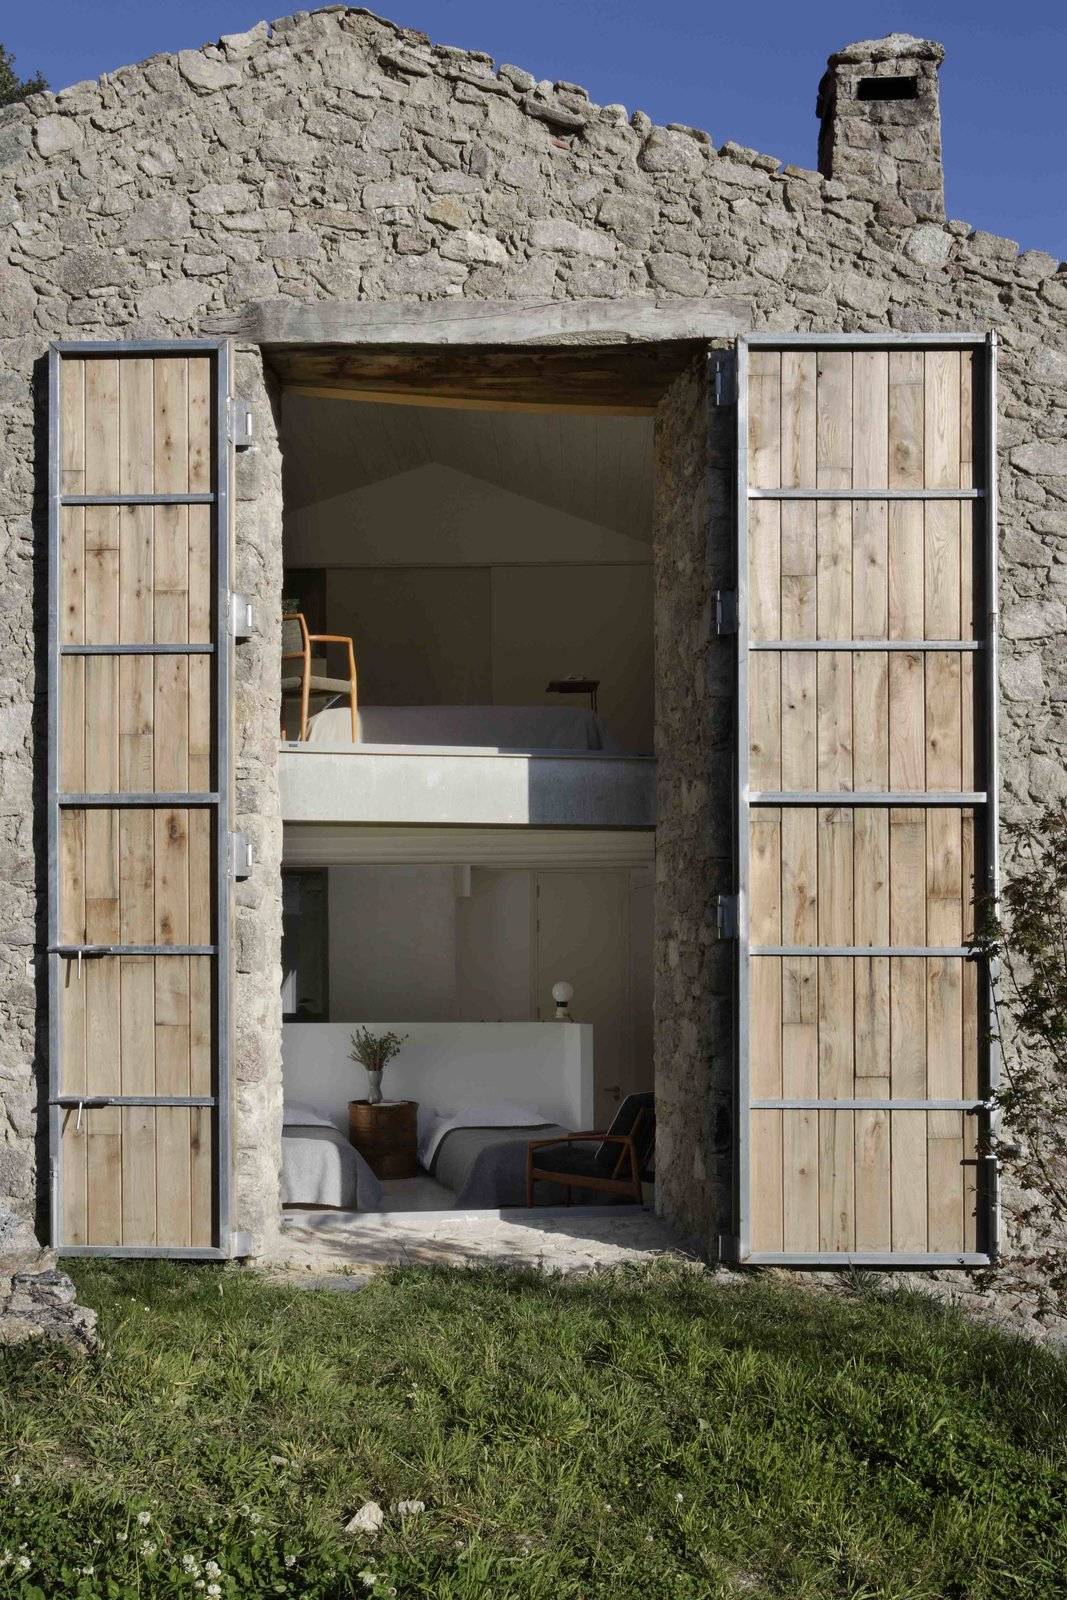 Exterior, Barn Building Type, Wood Siding Material, Stone Siding Material, Farmhouse Building Type, and House Building Type  Photos from An Abandoned Stable in Spain Is Transformed Into a Sustainable Vacation Home For Rent